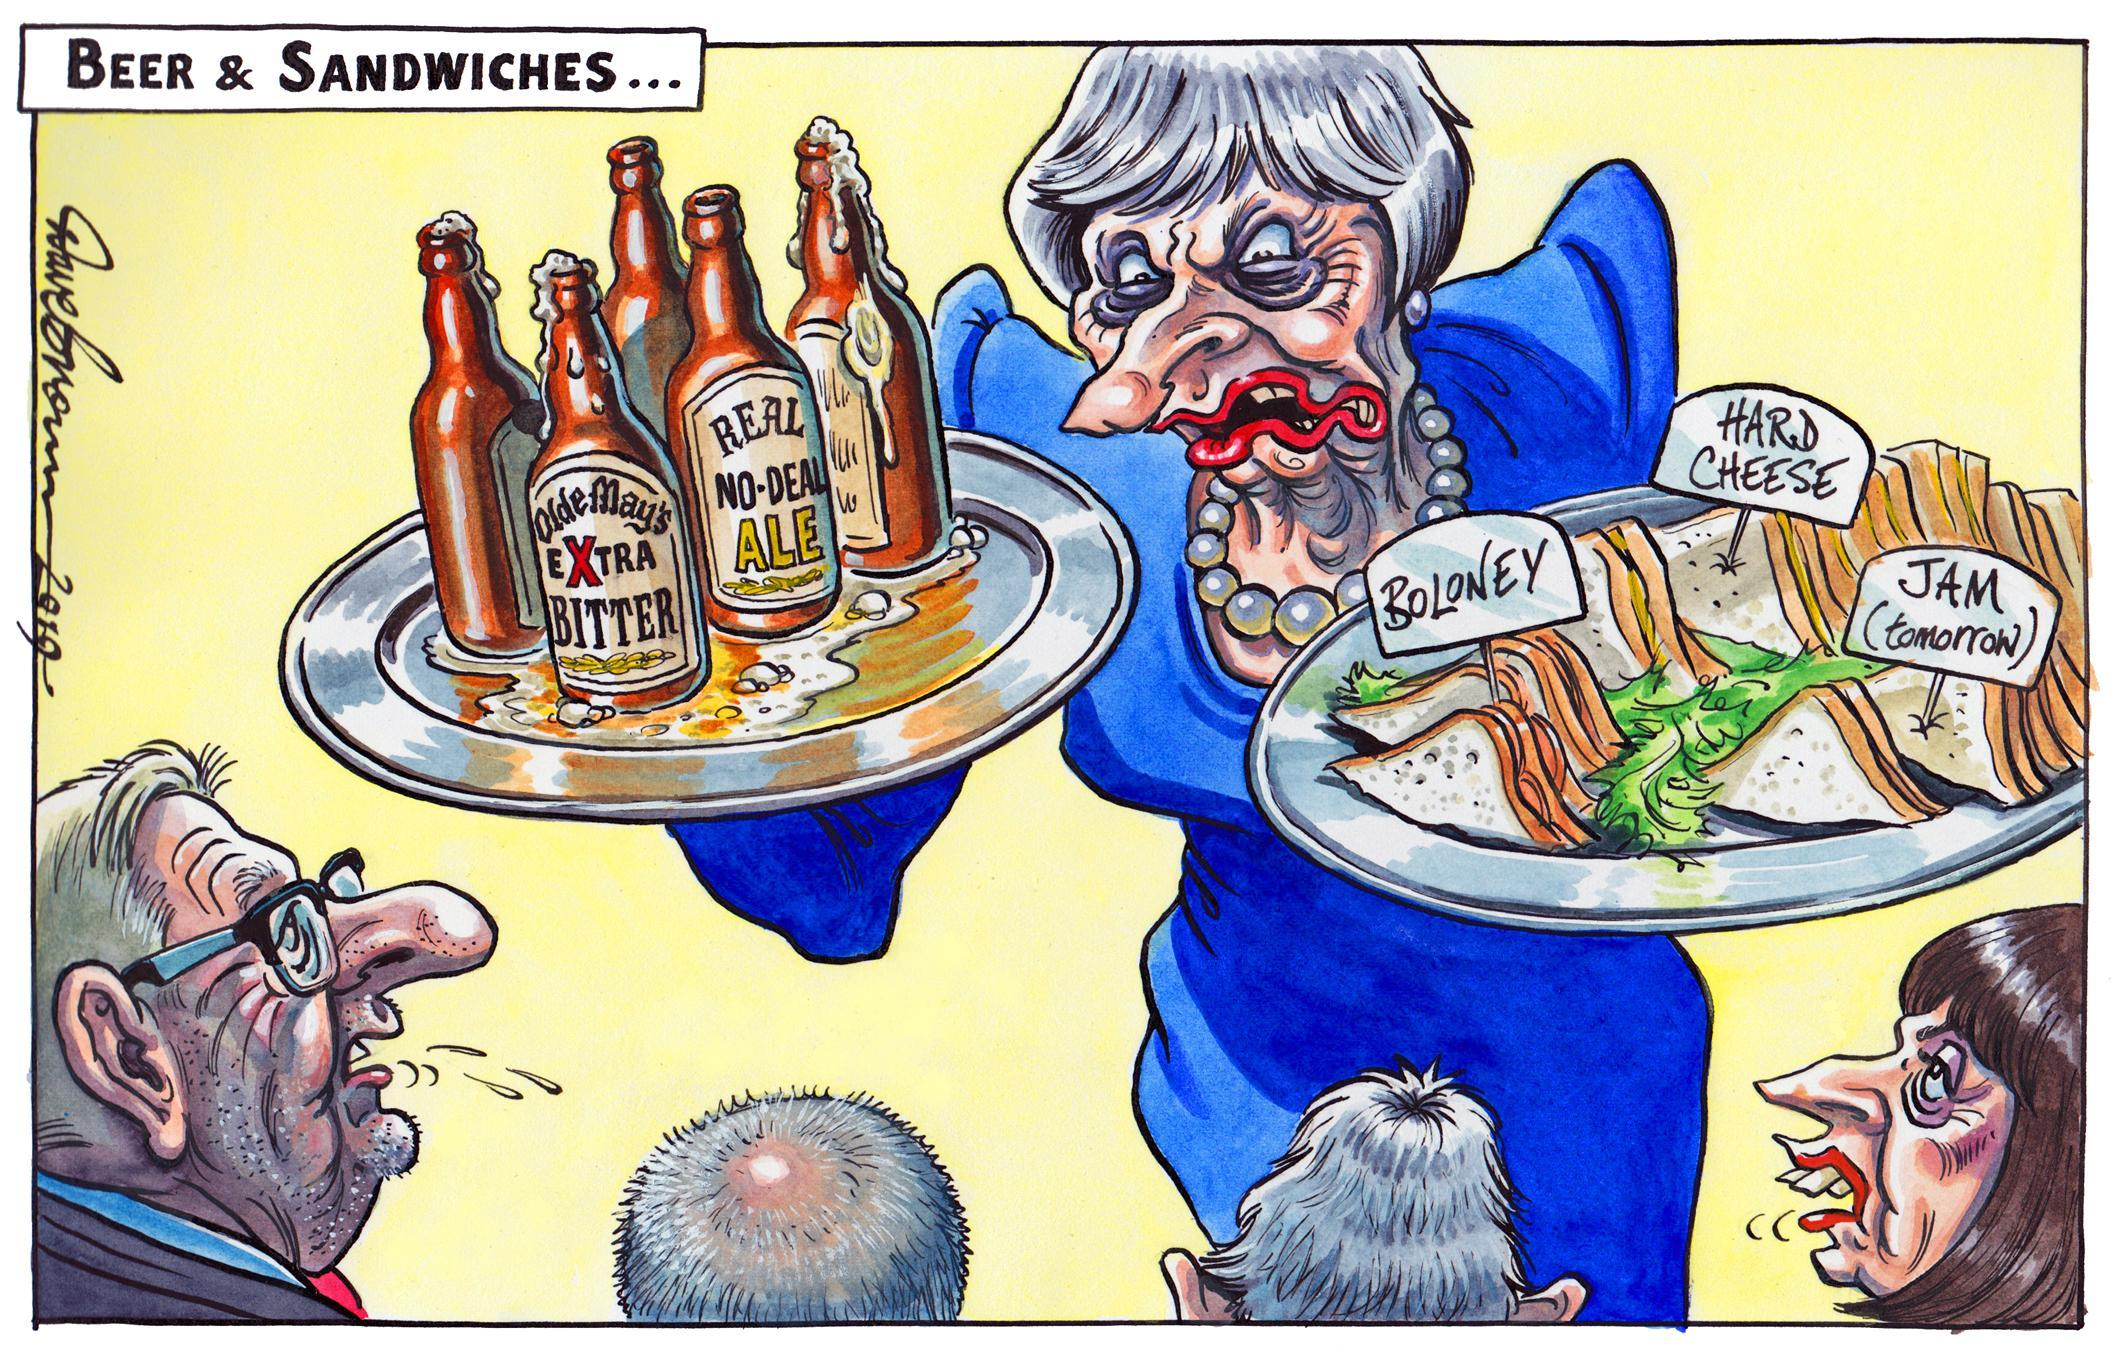 Daily News Cartoons On Politics Brexit And World News The Independent